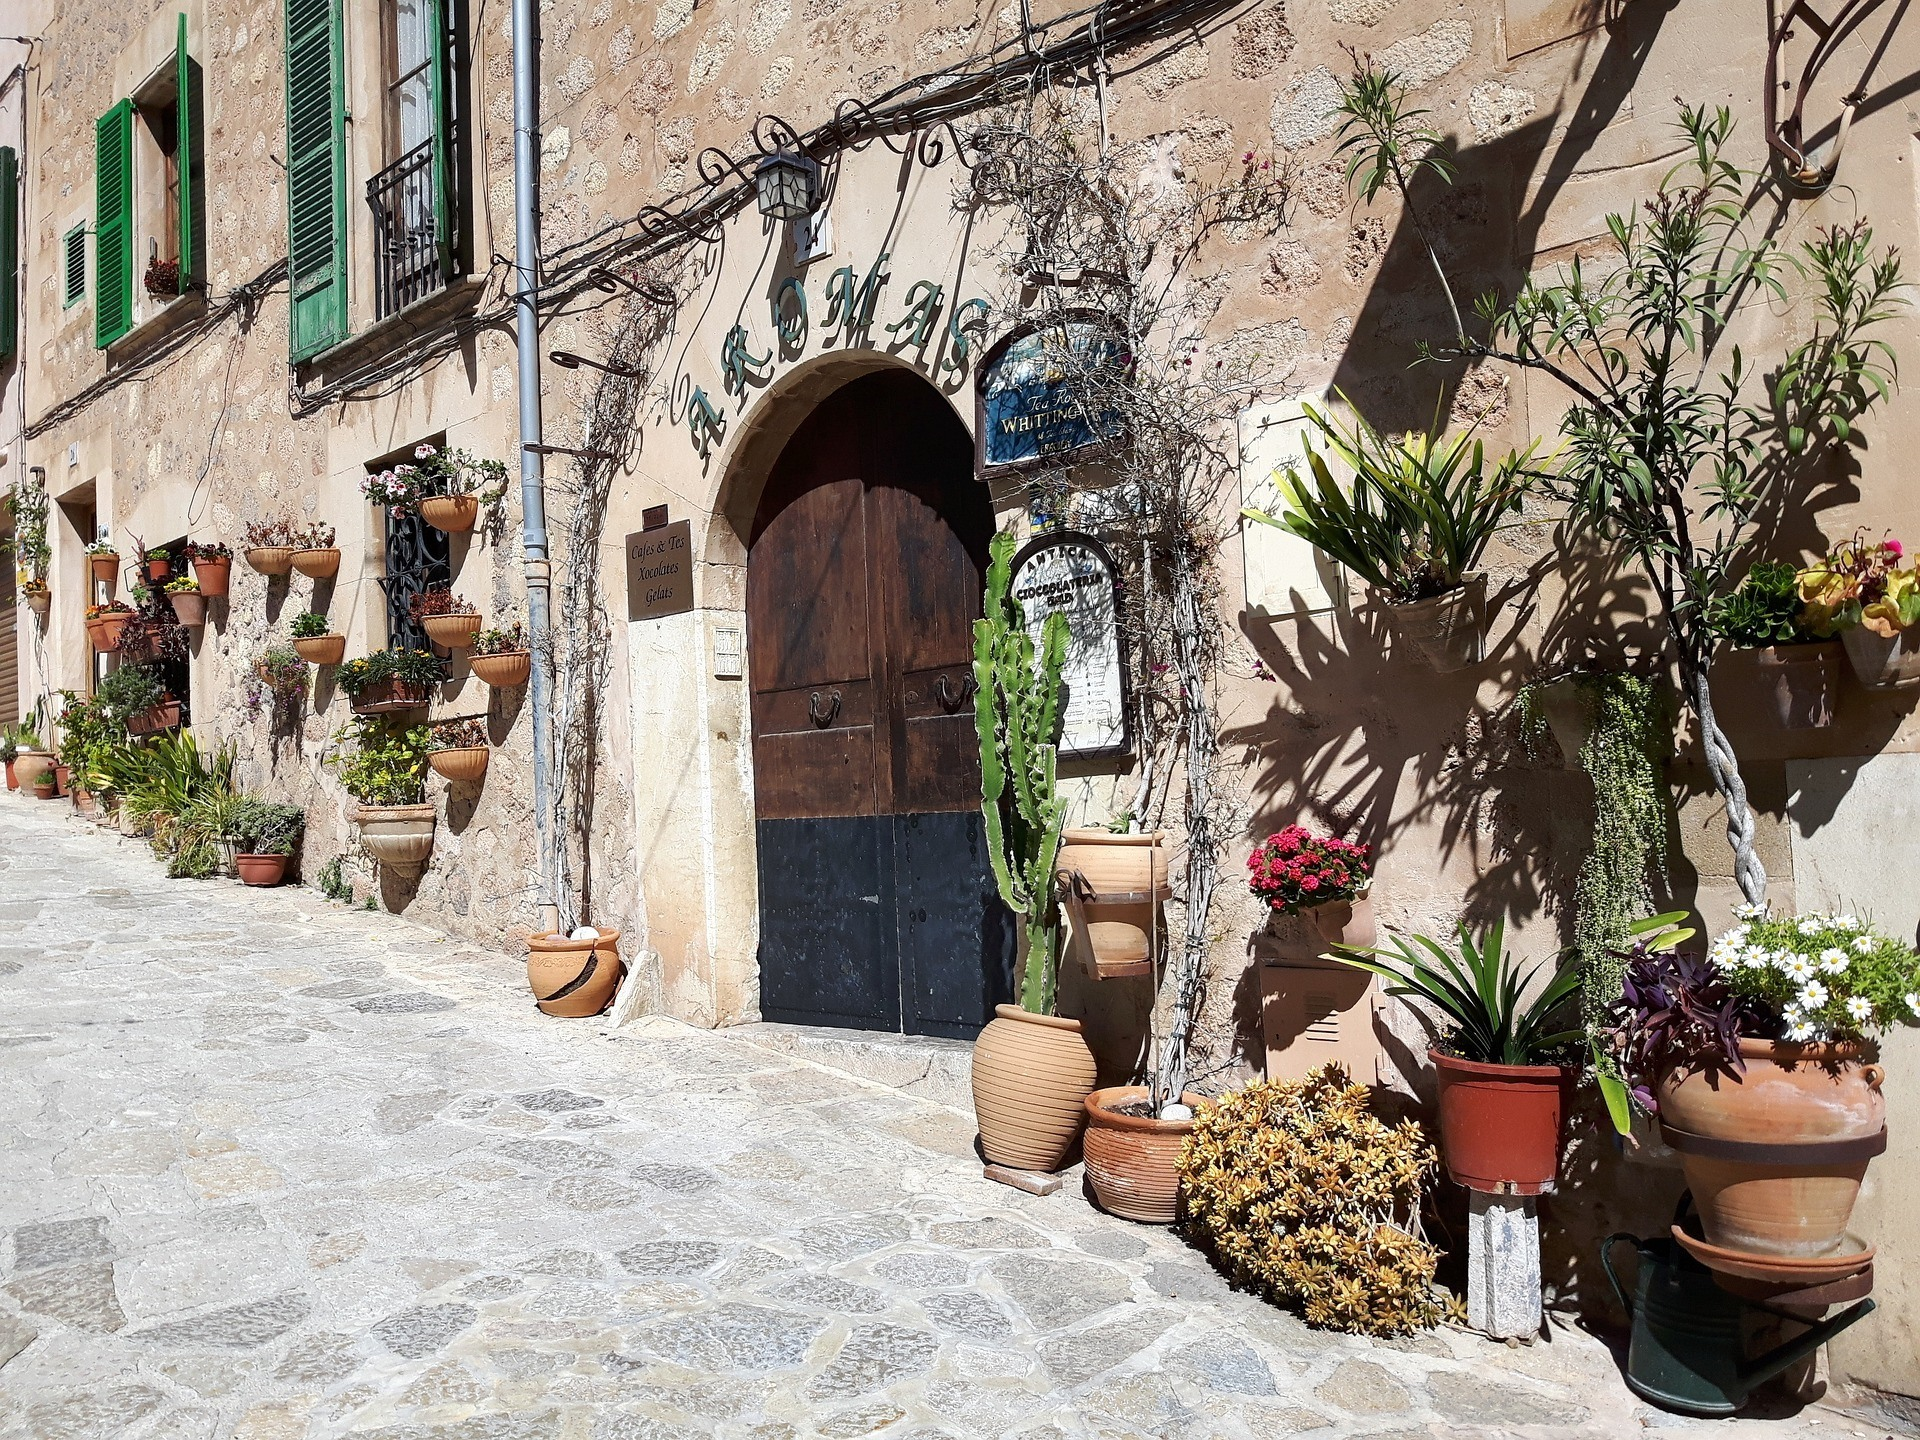 Valldemossa in Mallorca Photo: Fred Lange on Pixabay